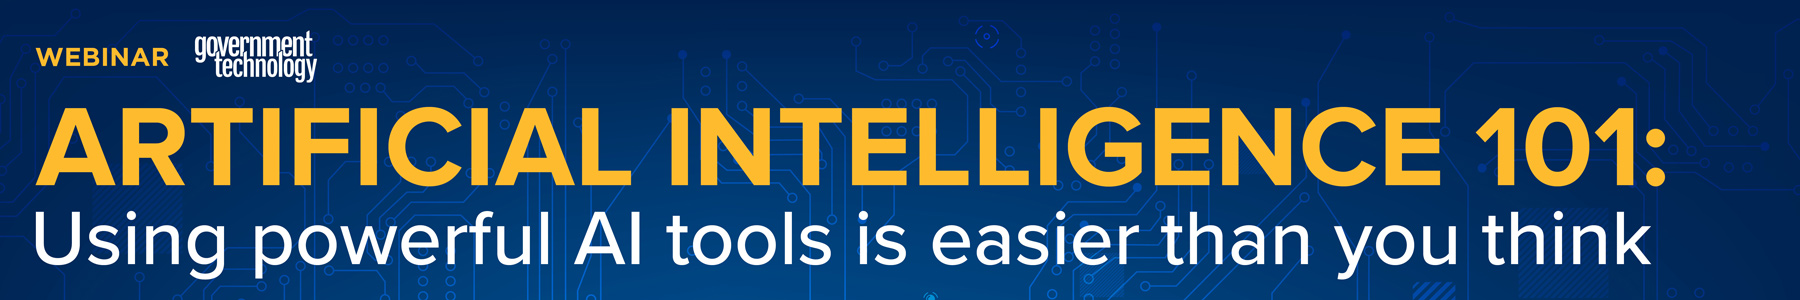 Artificial Intelligence 101: Using powerful AI tools is easier than you think